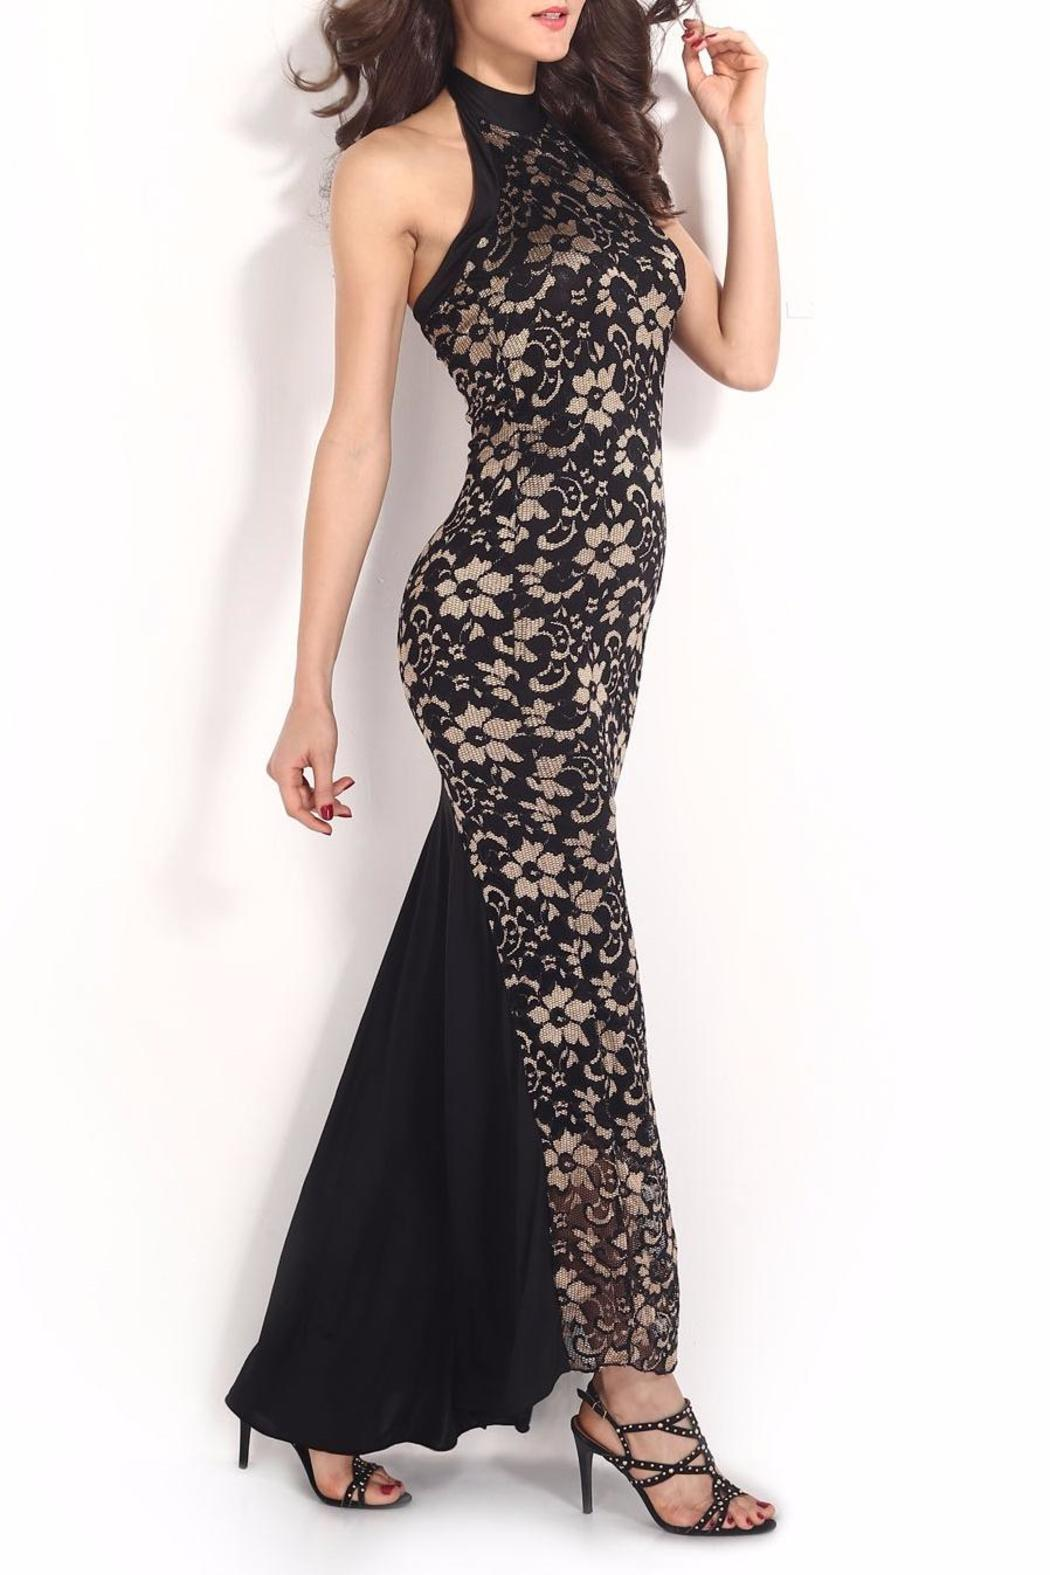 Adore Clothes & More Lace Long Dress - Side Cropped Image